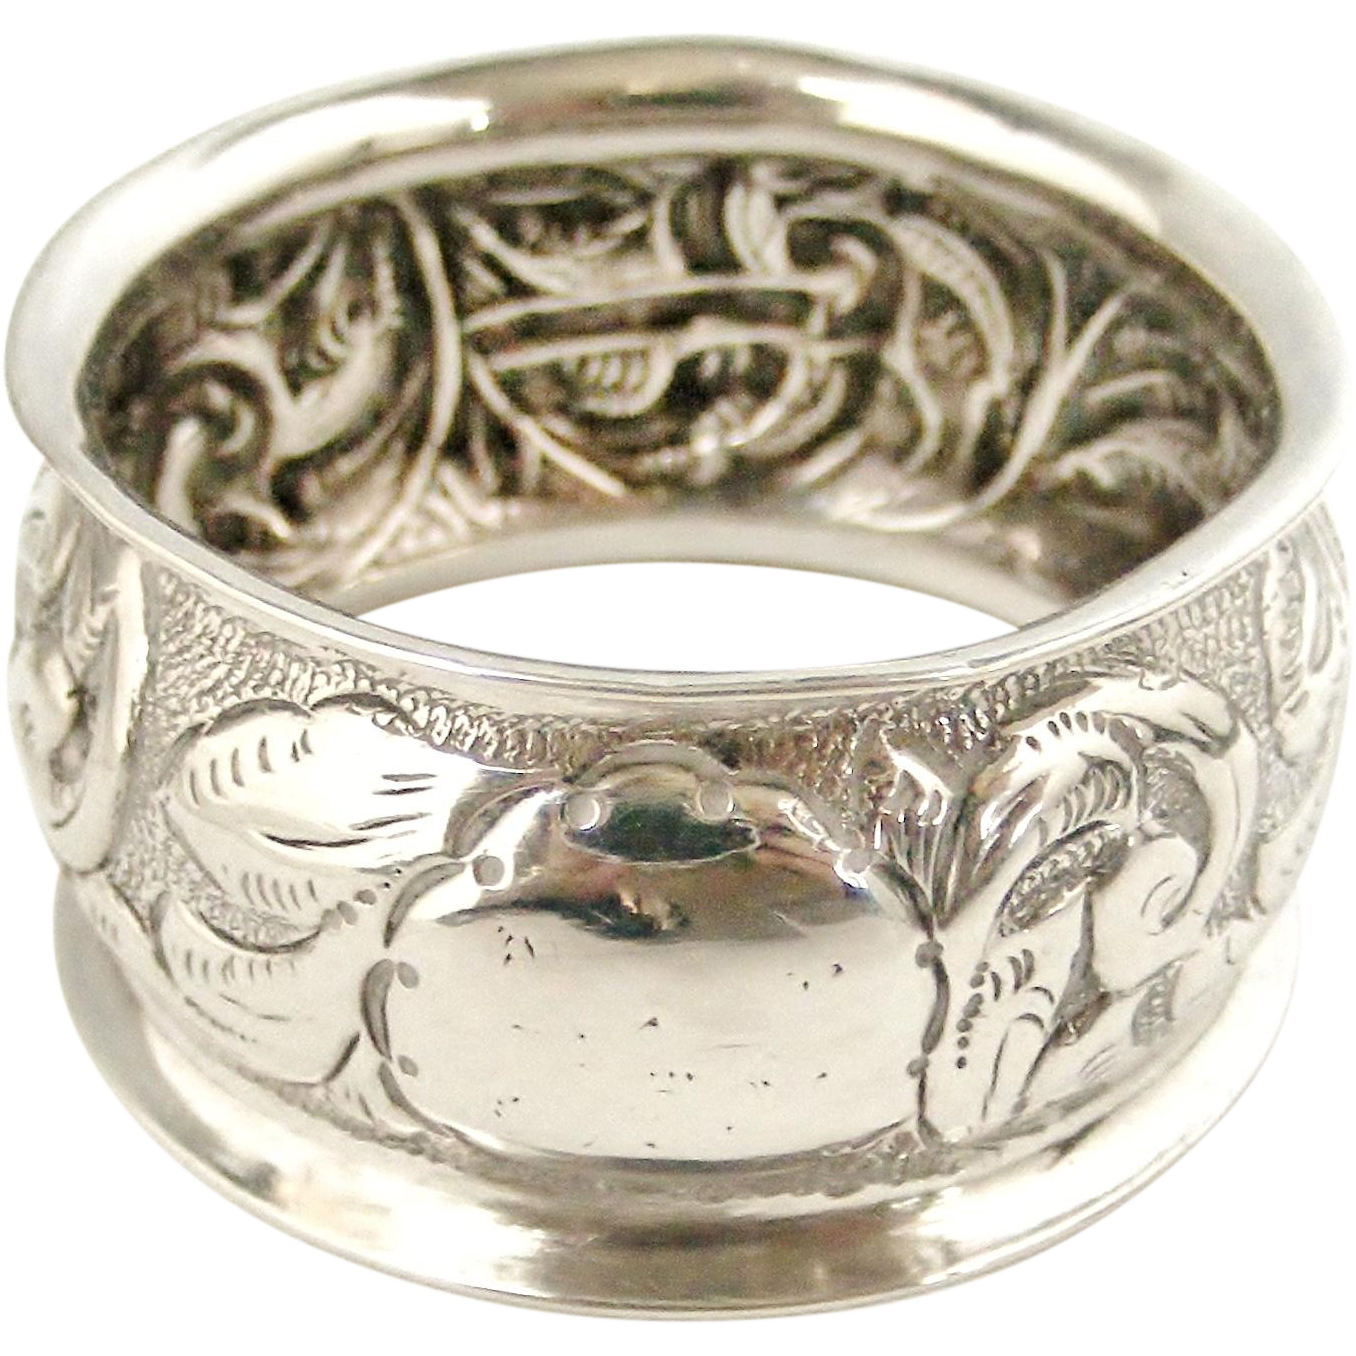 antique nouveau sterling silver napkin ring from